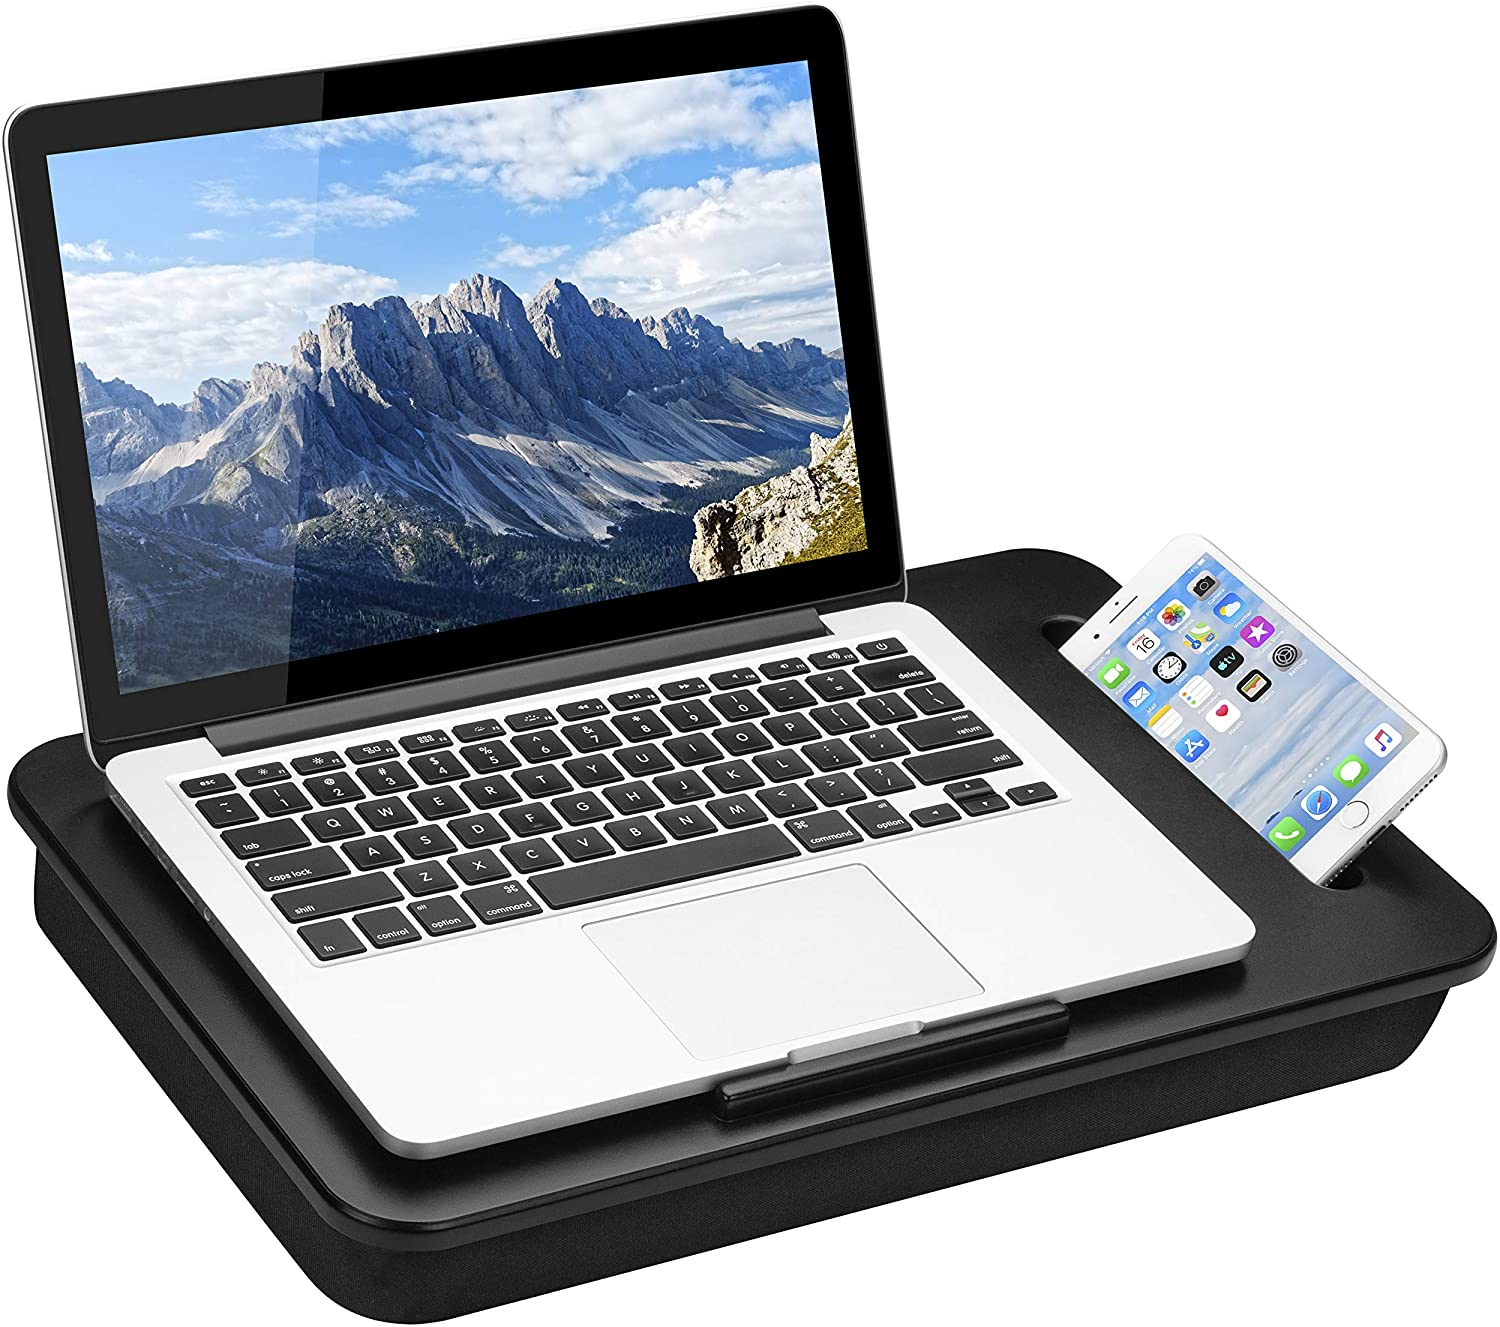 LapGear Sidekick Lap Desk - Black - Fits Up to 15.6 Inch Laptops - Style No. 44218